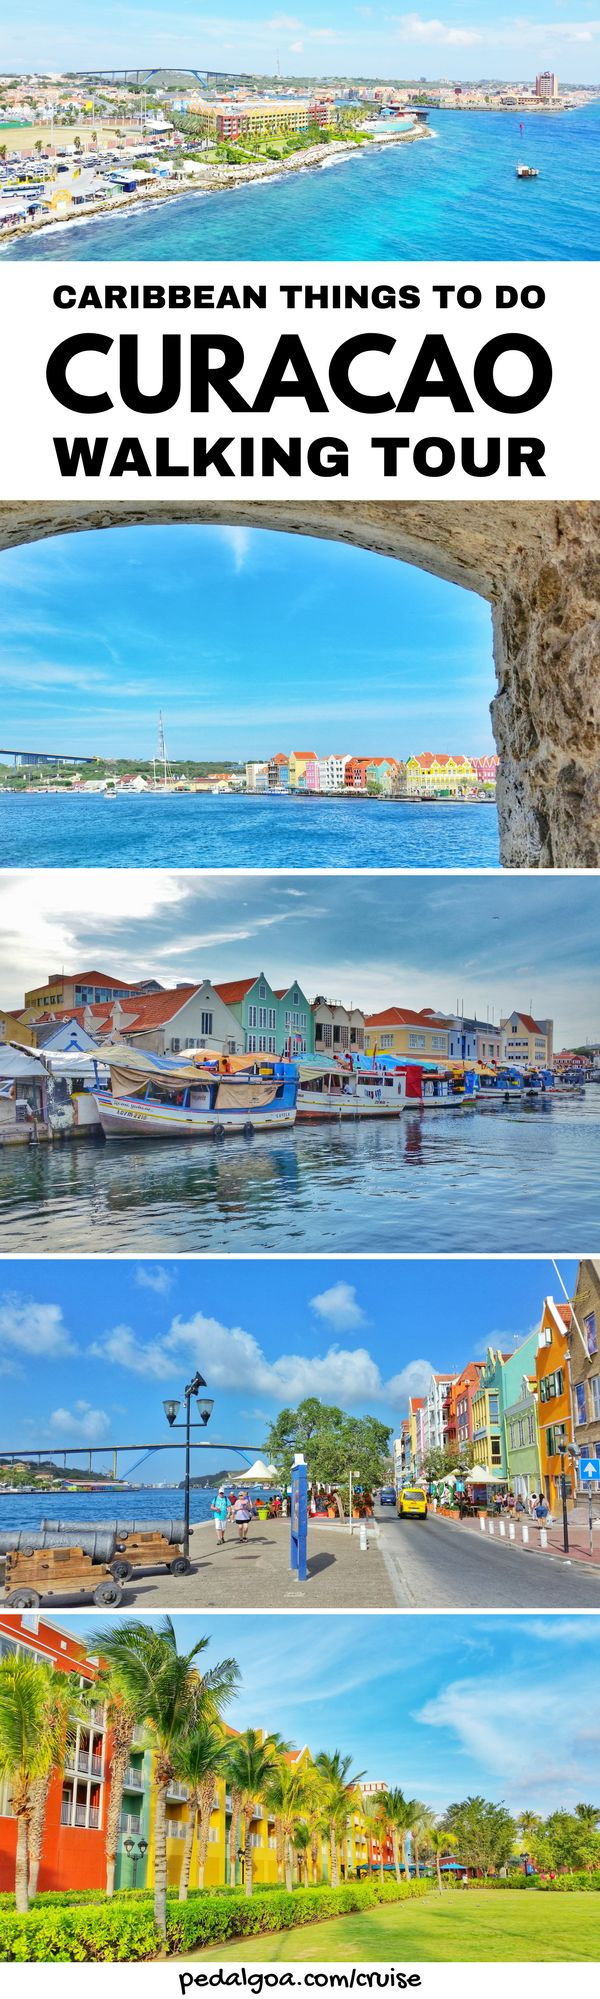 For a Caribbean cruise without excursions, things to do in Curacao, near Curacao cruise port. Outdoor shopping mall, fort to get to downtown Willemstad with culture for more shopping and food at restaurants. Floating bridge, market, waterfront cafe. Budget-friendly activities when not taking tour. Cruise tips for southern Caribbean cruise to Curacao that might include Grand Turk, Aruba, Bonaire, Dominican Republic, or Barbados too. Think what to wear, what to pack... #cruise #cruisetips